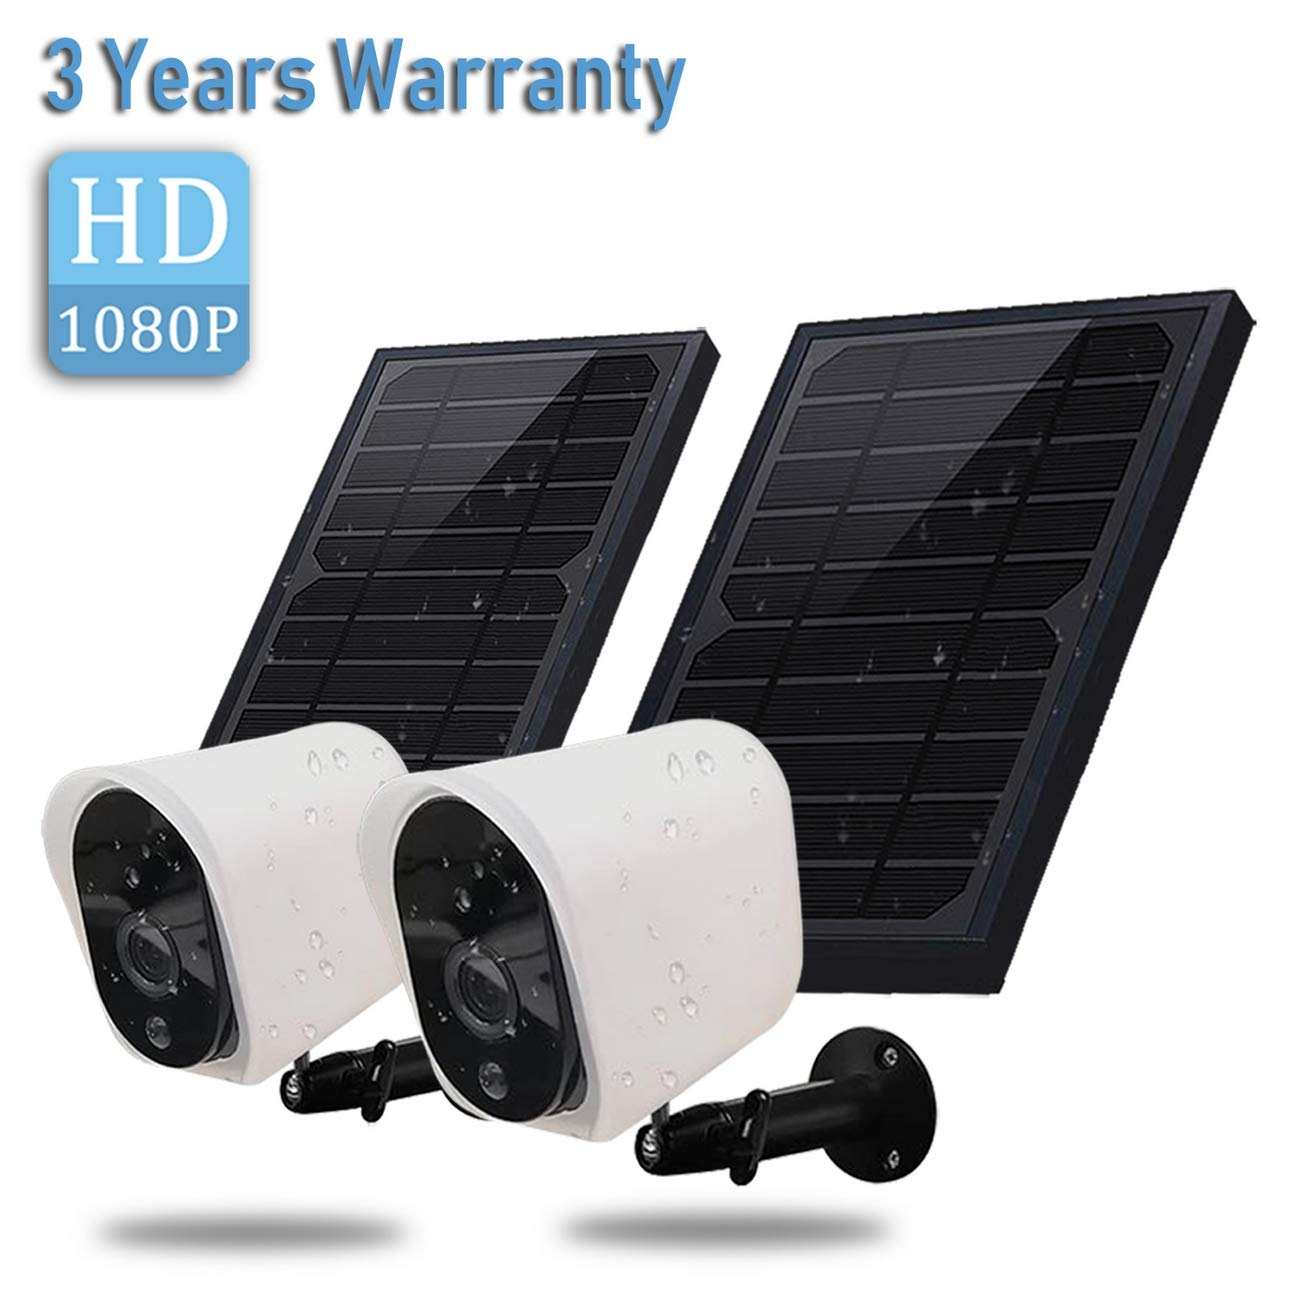 Wireless Rechargeable Battery Powered Security Camera with Solar Panel, 1080p HD Waterproof Outdoor Home Surveillance with Motion Detection, Two Way Audio, Night Vision-Work with Alexa(2 Pack) by RaceTek